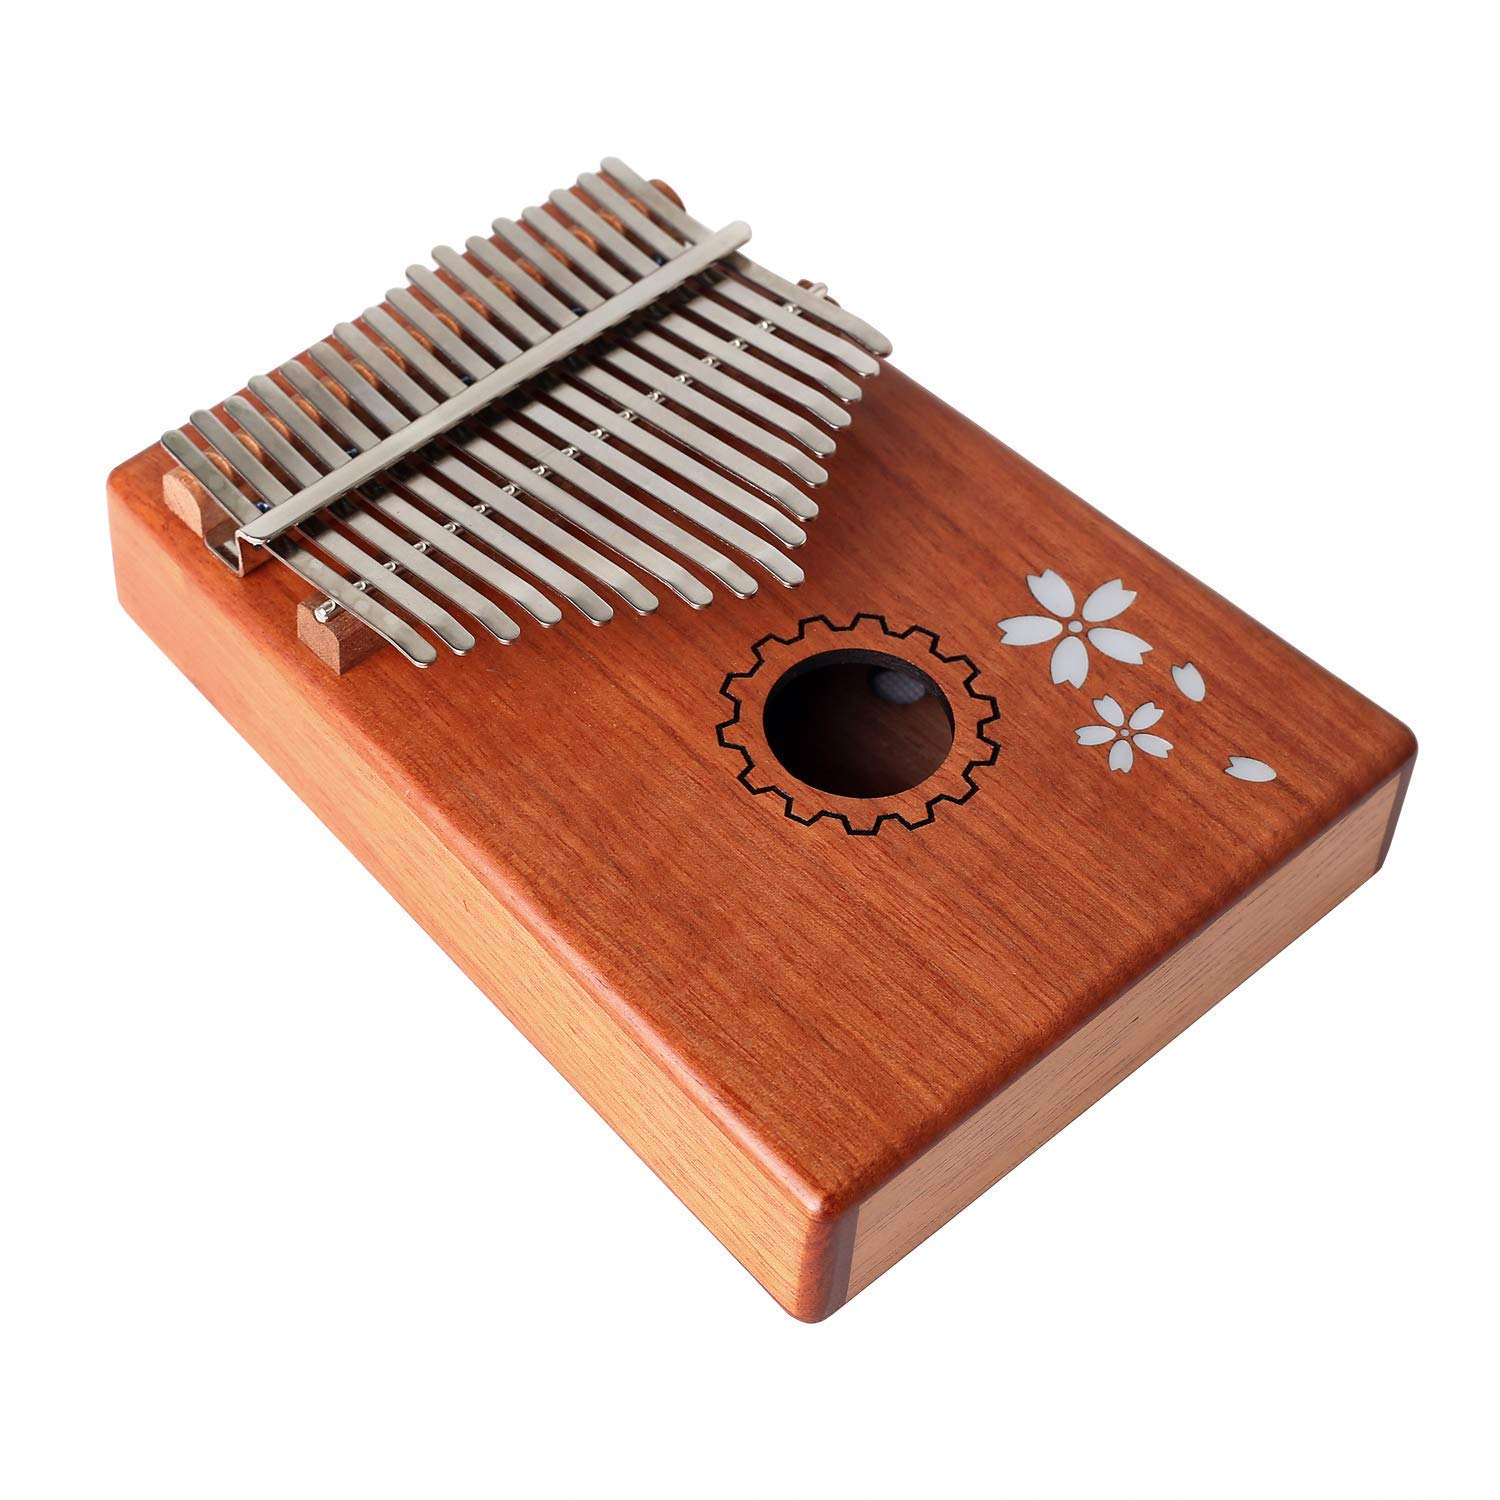 Kalimba Thumb Piano Finger Paino 17 Keys Instrument with Key Locking System, Mahogany Body Portable Instrument with Tuning Hammer Music Book and Carry Bag VTOP Online Shop CA1810-25